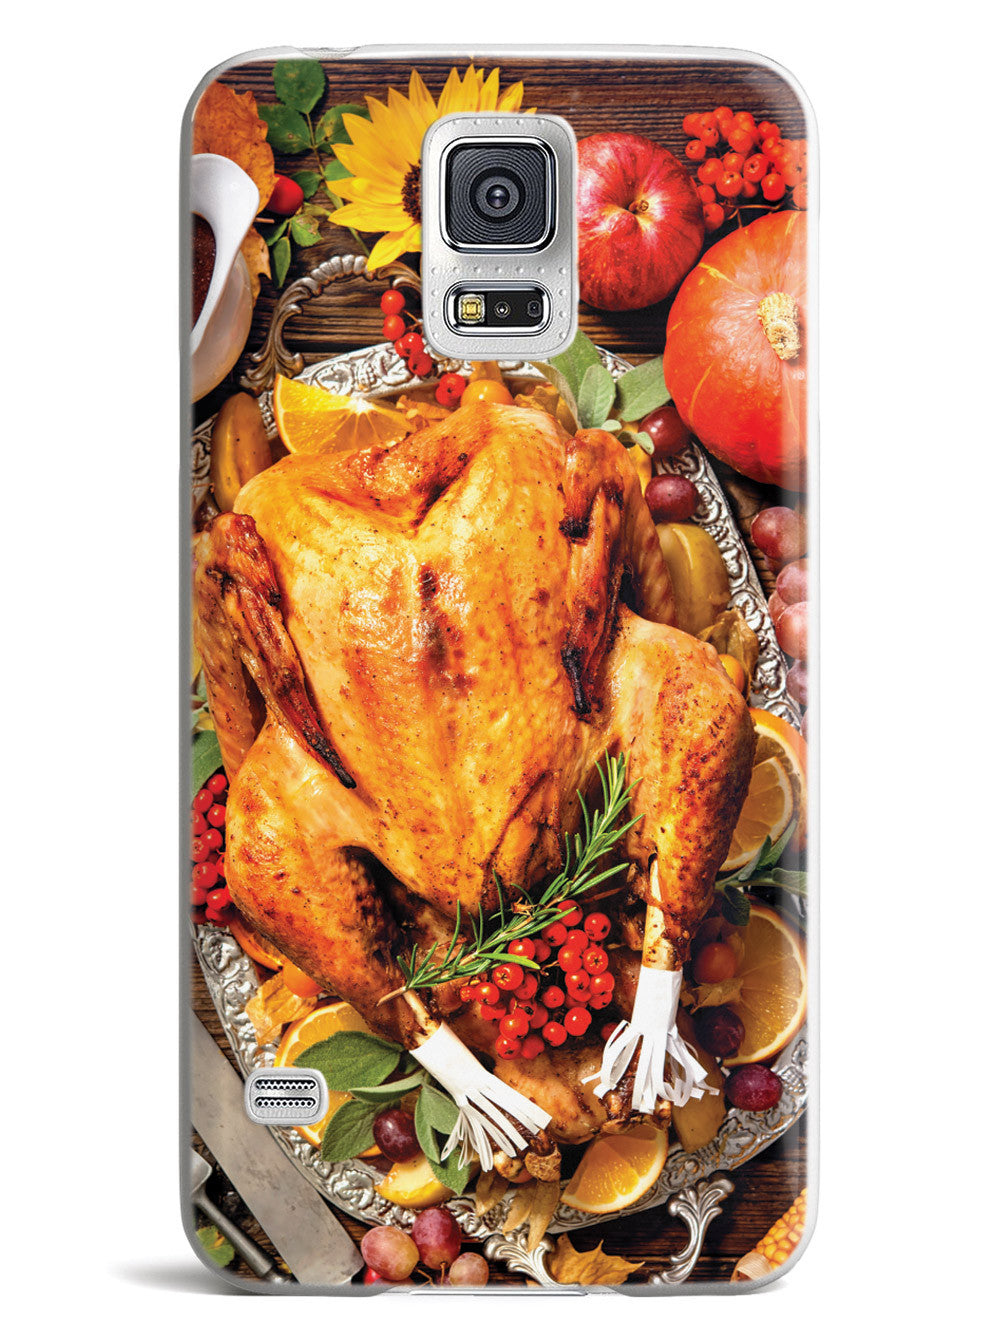 Thanksgiving Dinner - Texturized - White Case